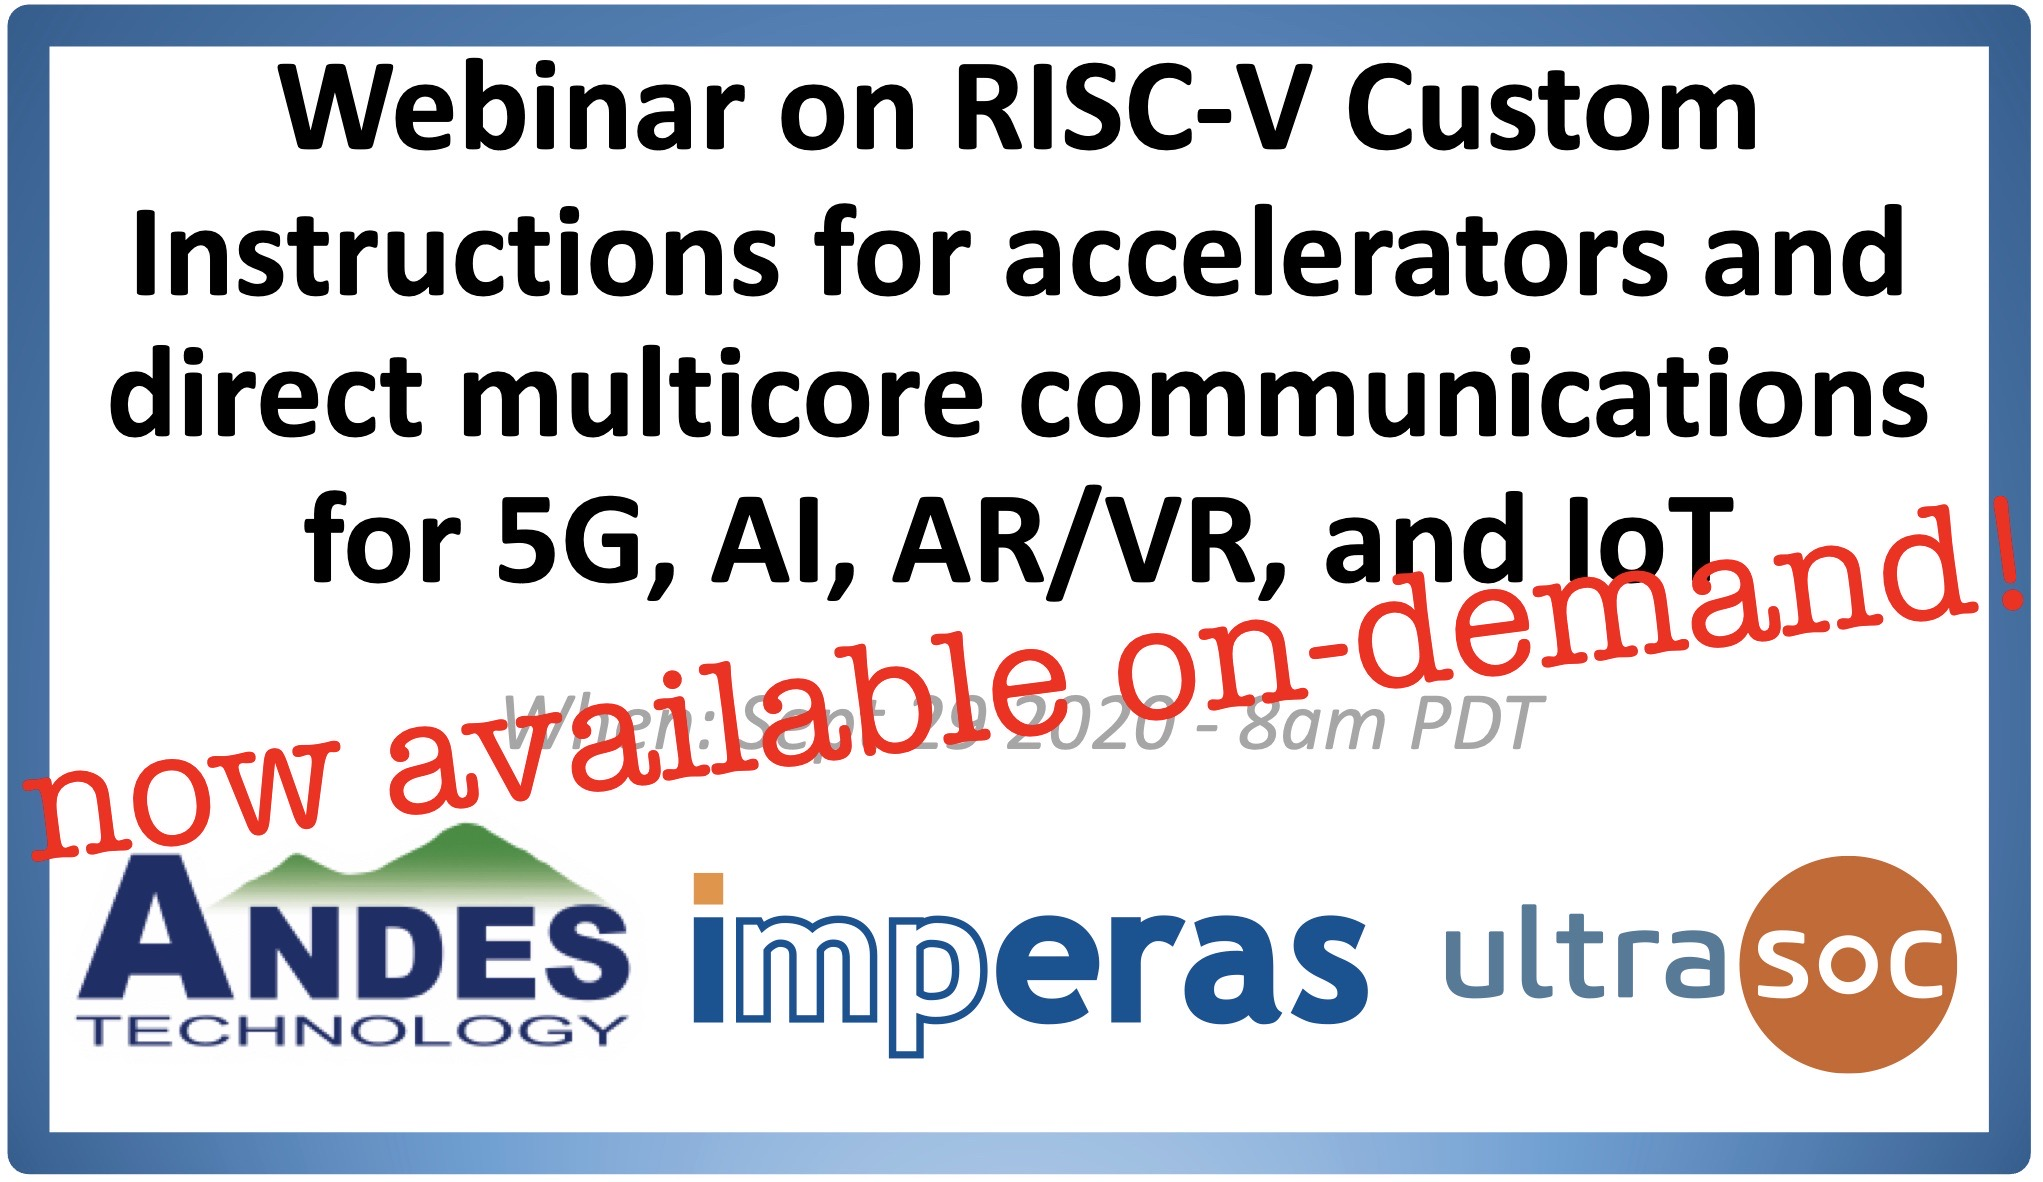 Recording now available for webinar on RISC-V Custom Instructions